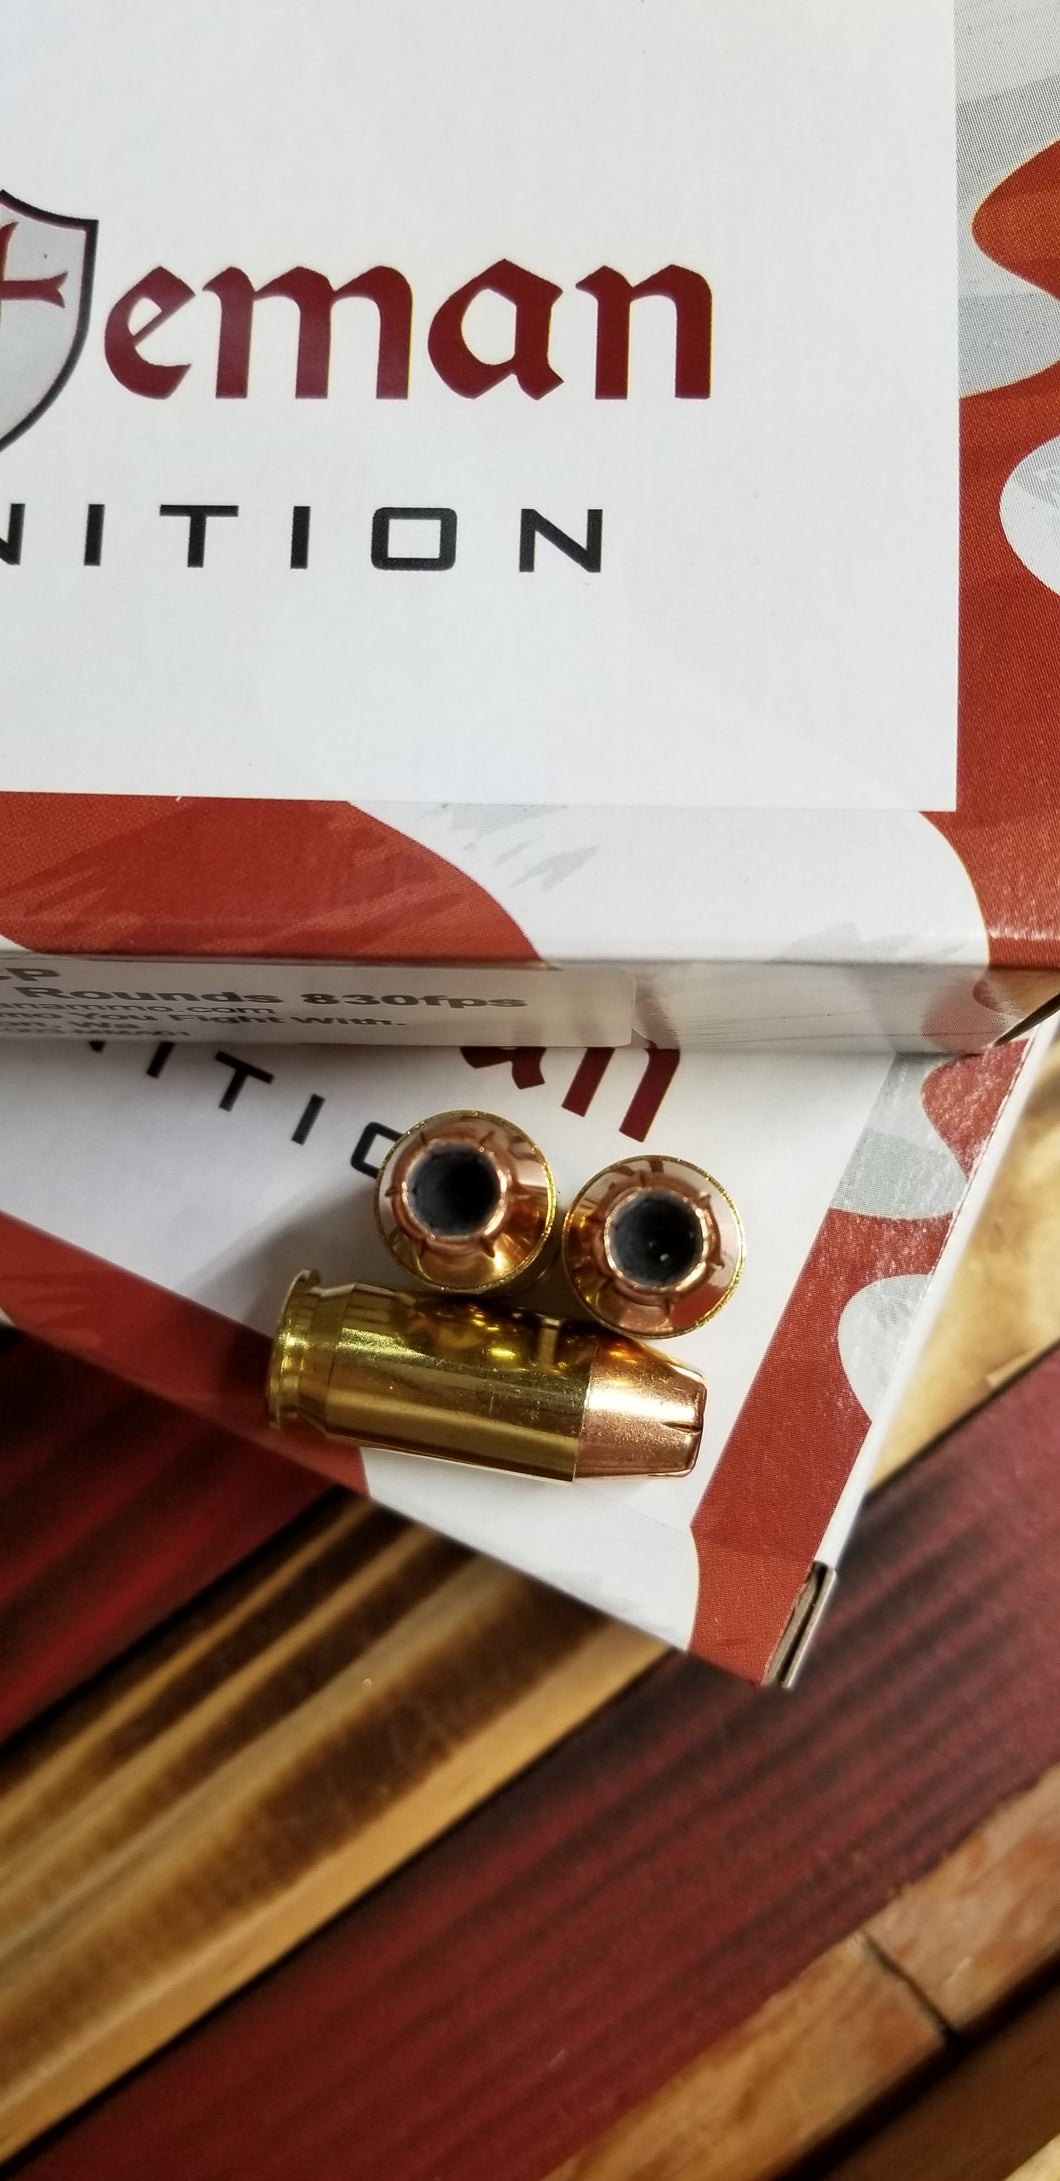 45 ACP 230 grain XTP @ 880 fps. 50 rounds